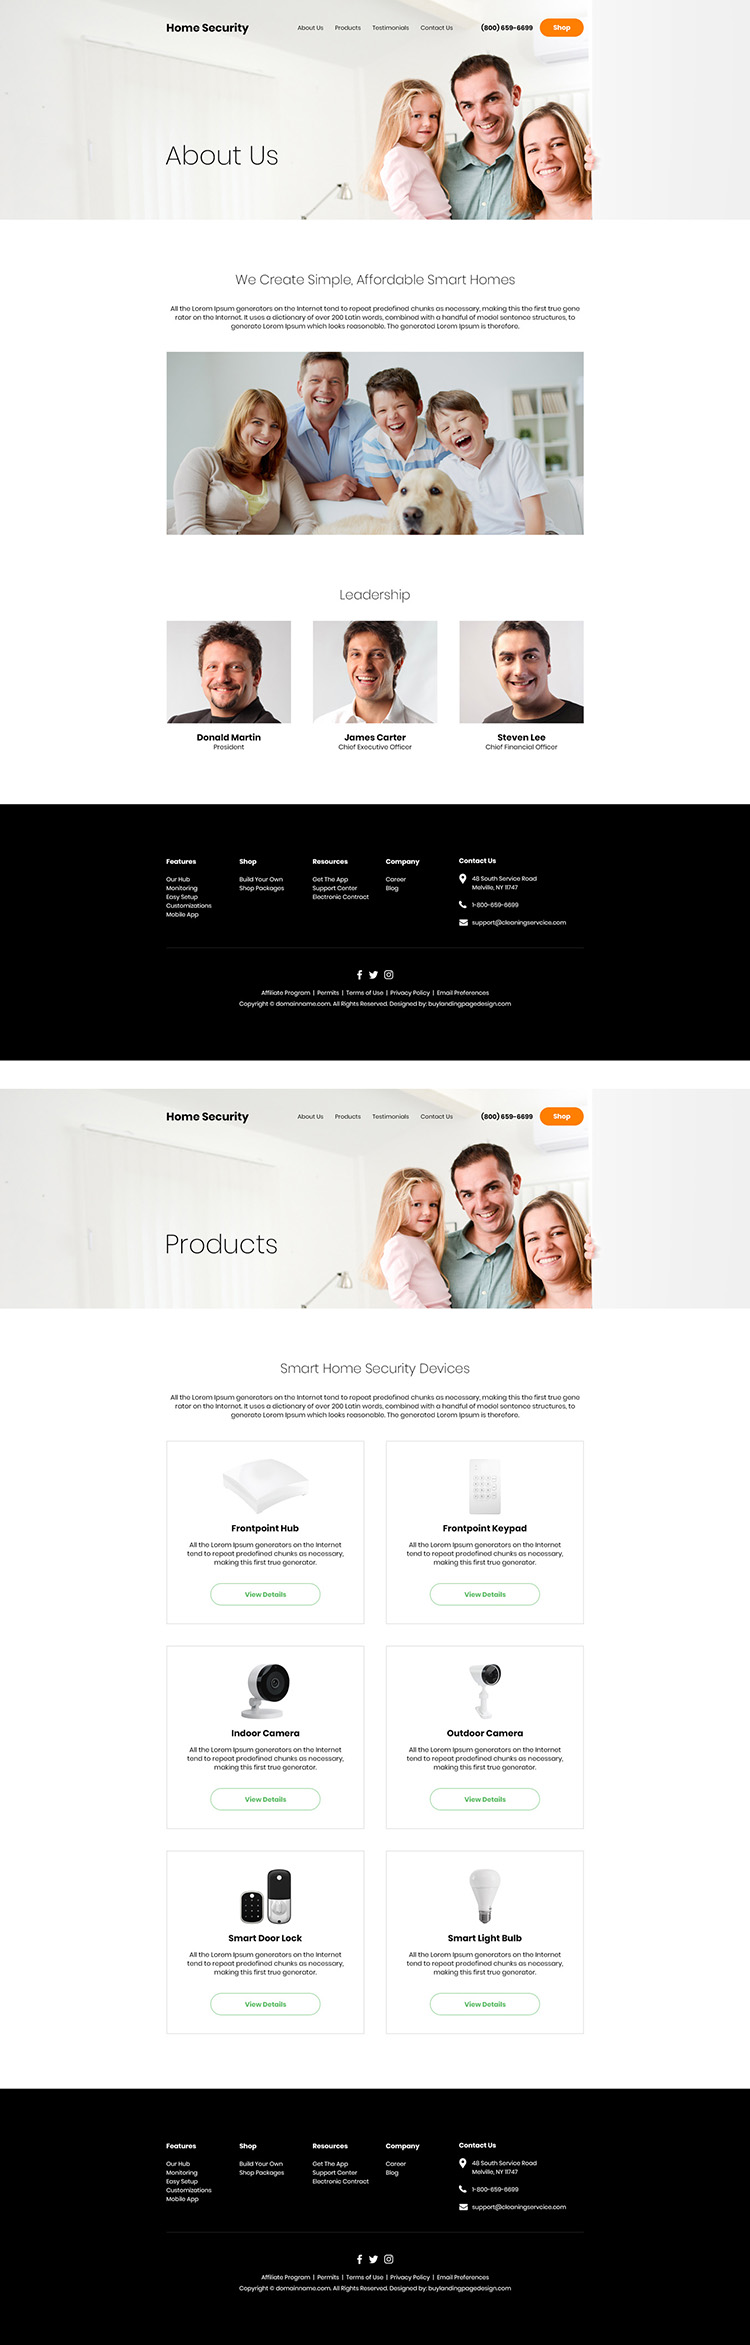 home security products responsive website design